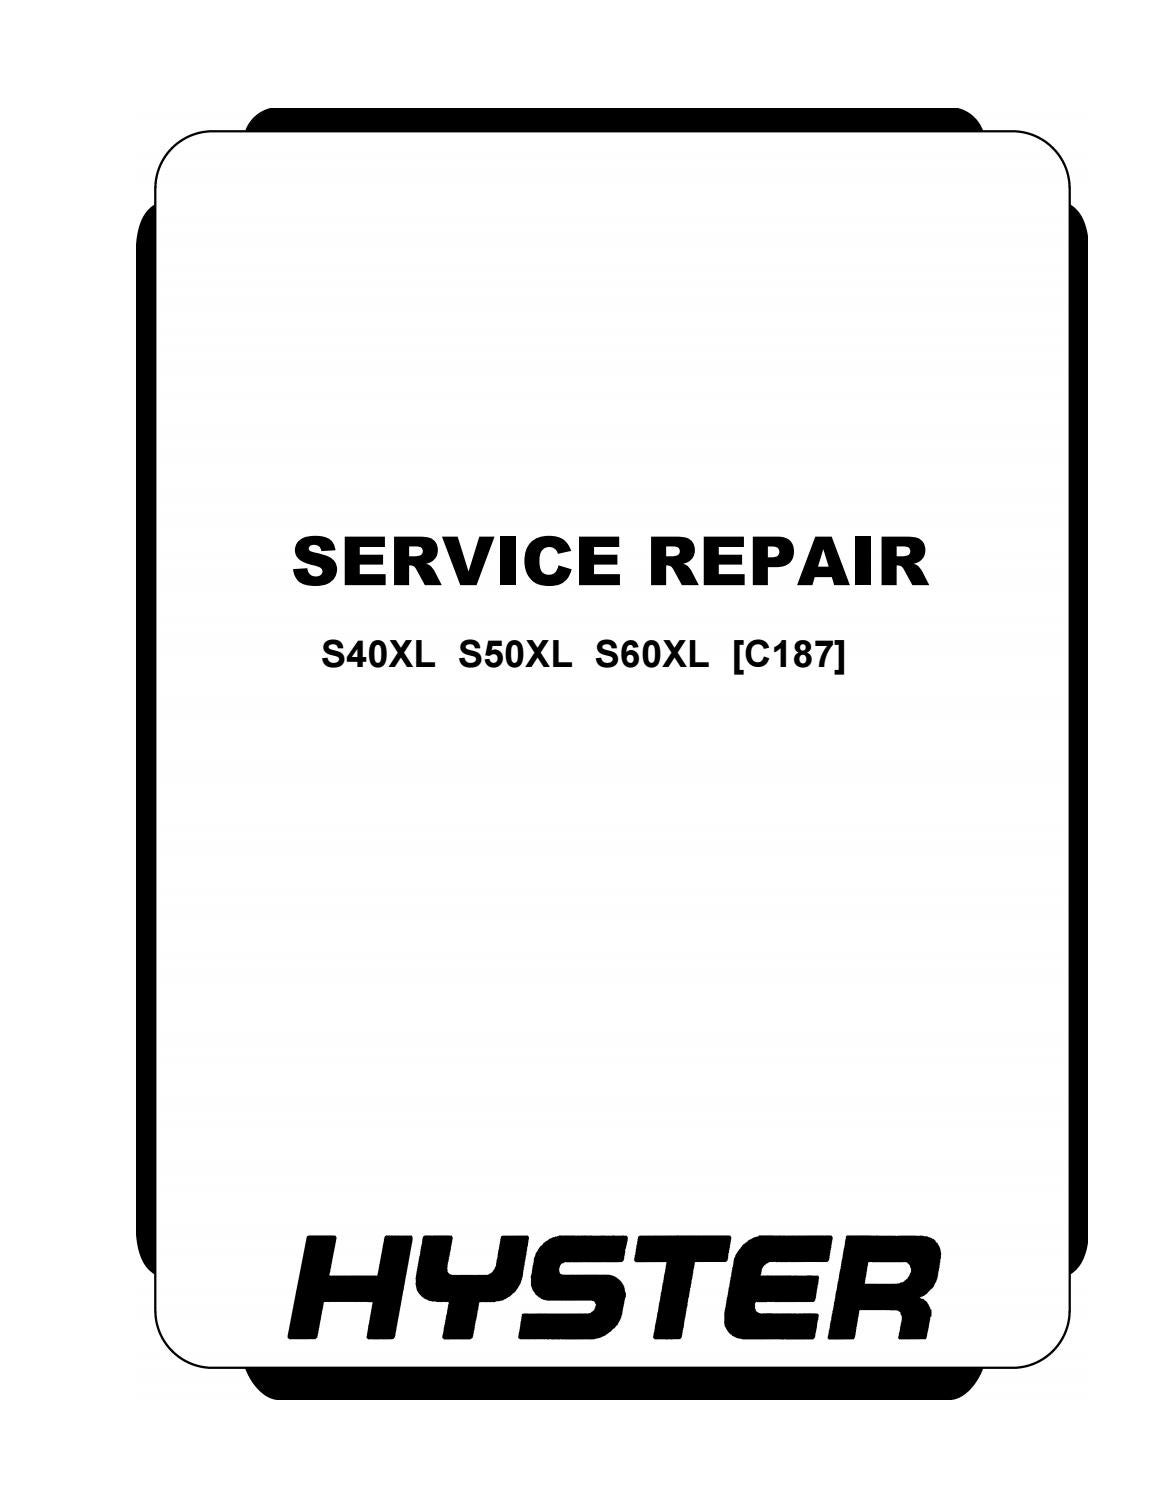 Hyster C187 (S60XL) Forklift Service Repair Manual by